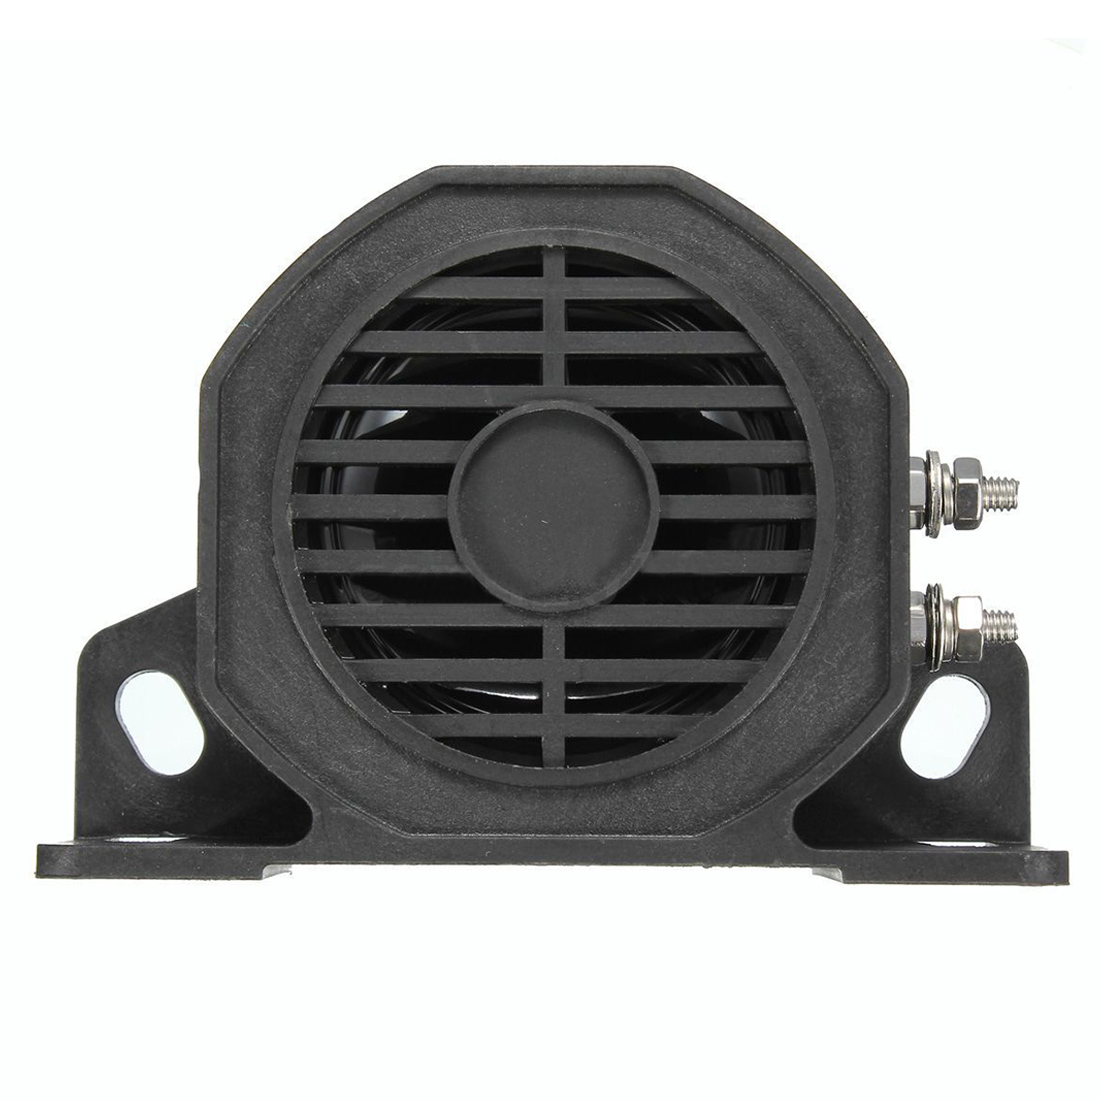 AUTO New DC12-80V 102 dB Car Motorcycle Vehicle Reversing Horn Speakers Back-up Alarm star fit db 102 5